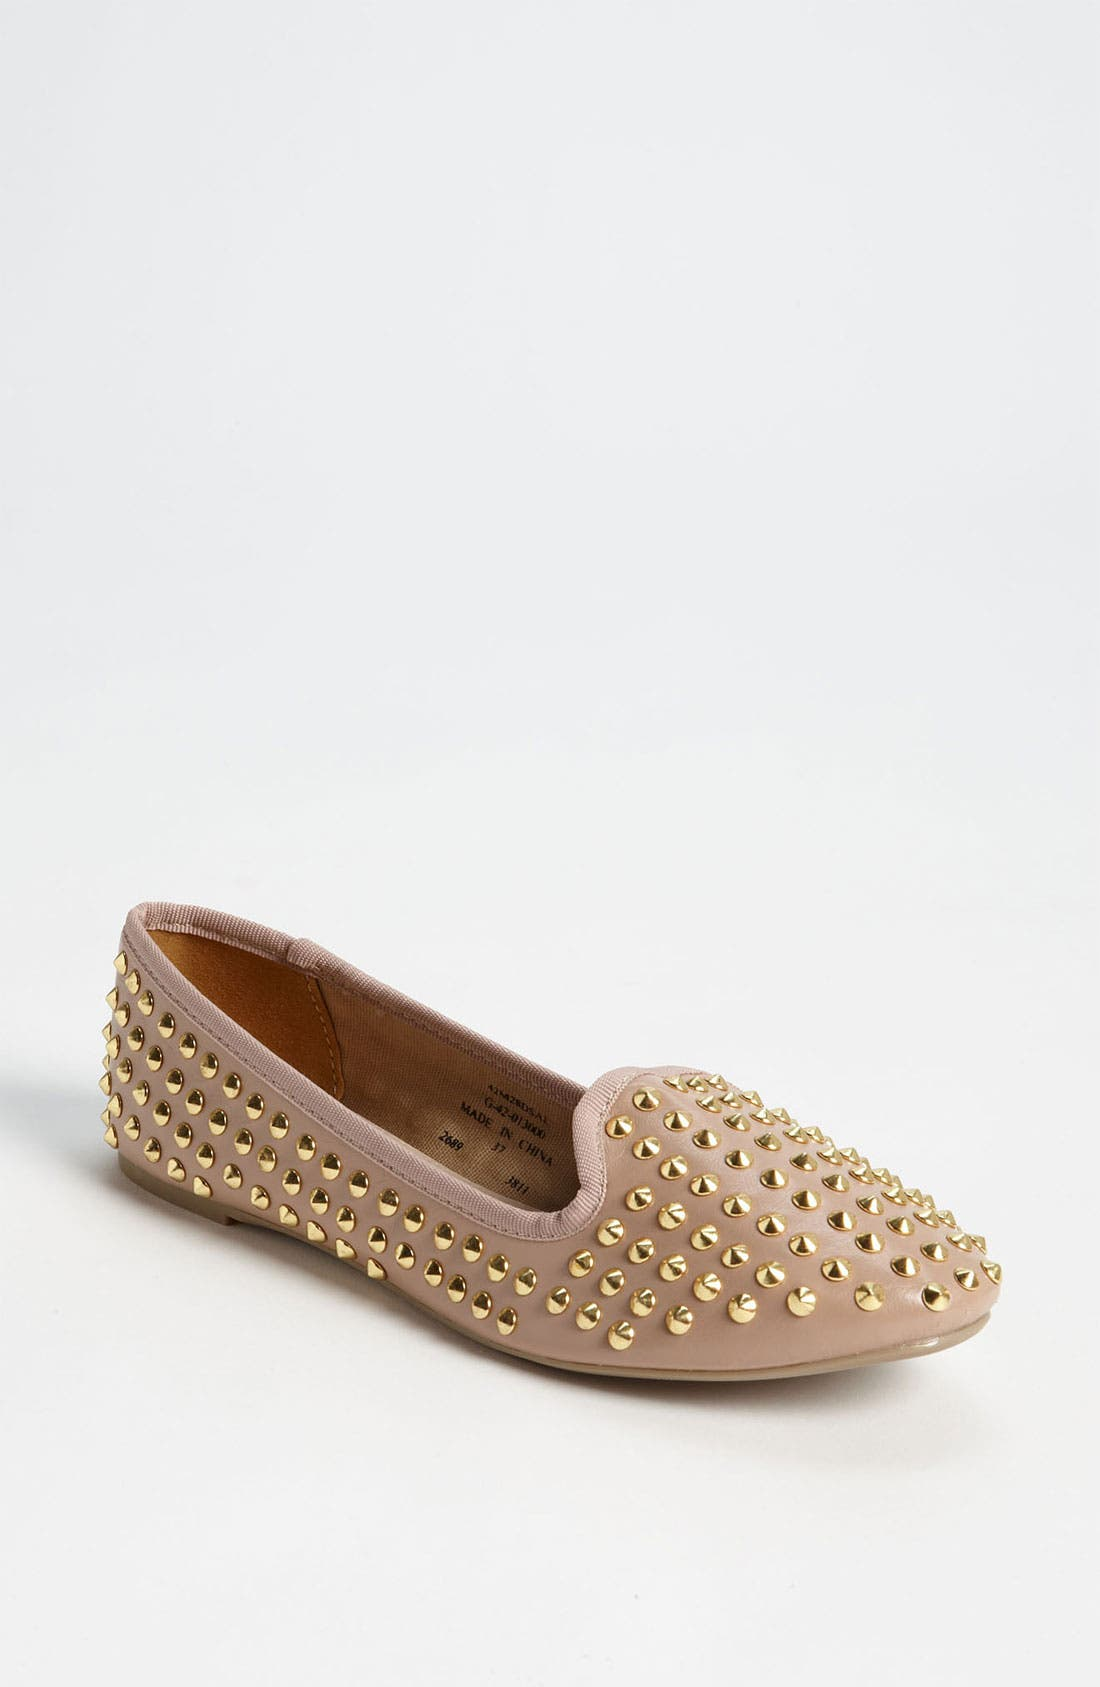 Alternate Image 1 Selected - Topshop 'Maveriq' Flat